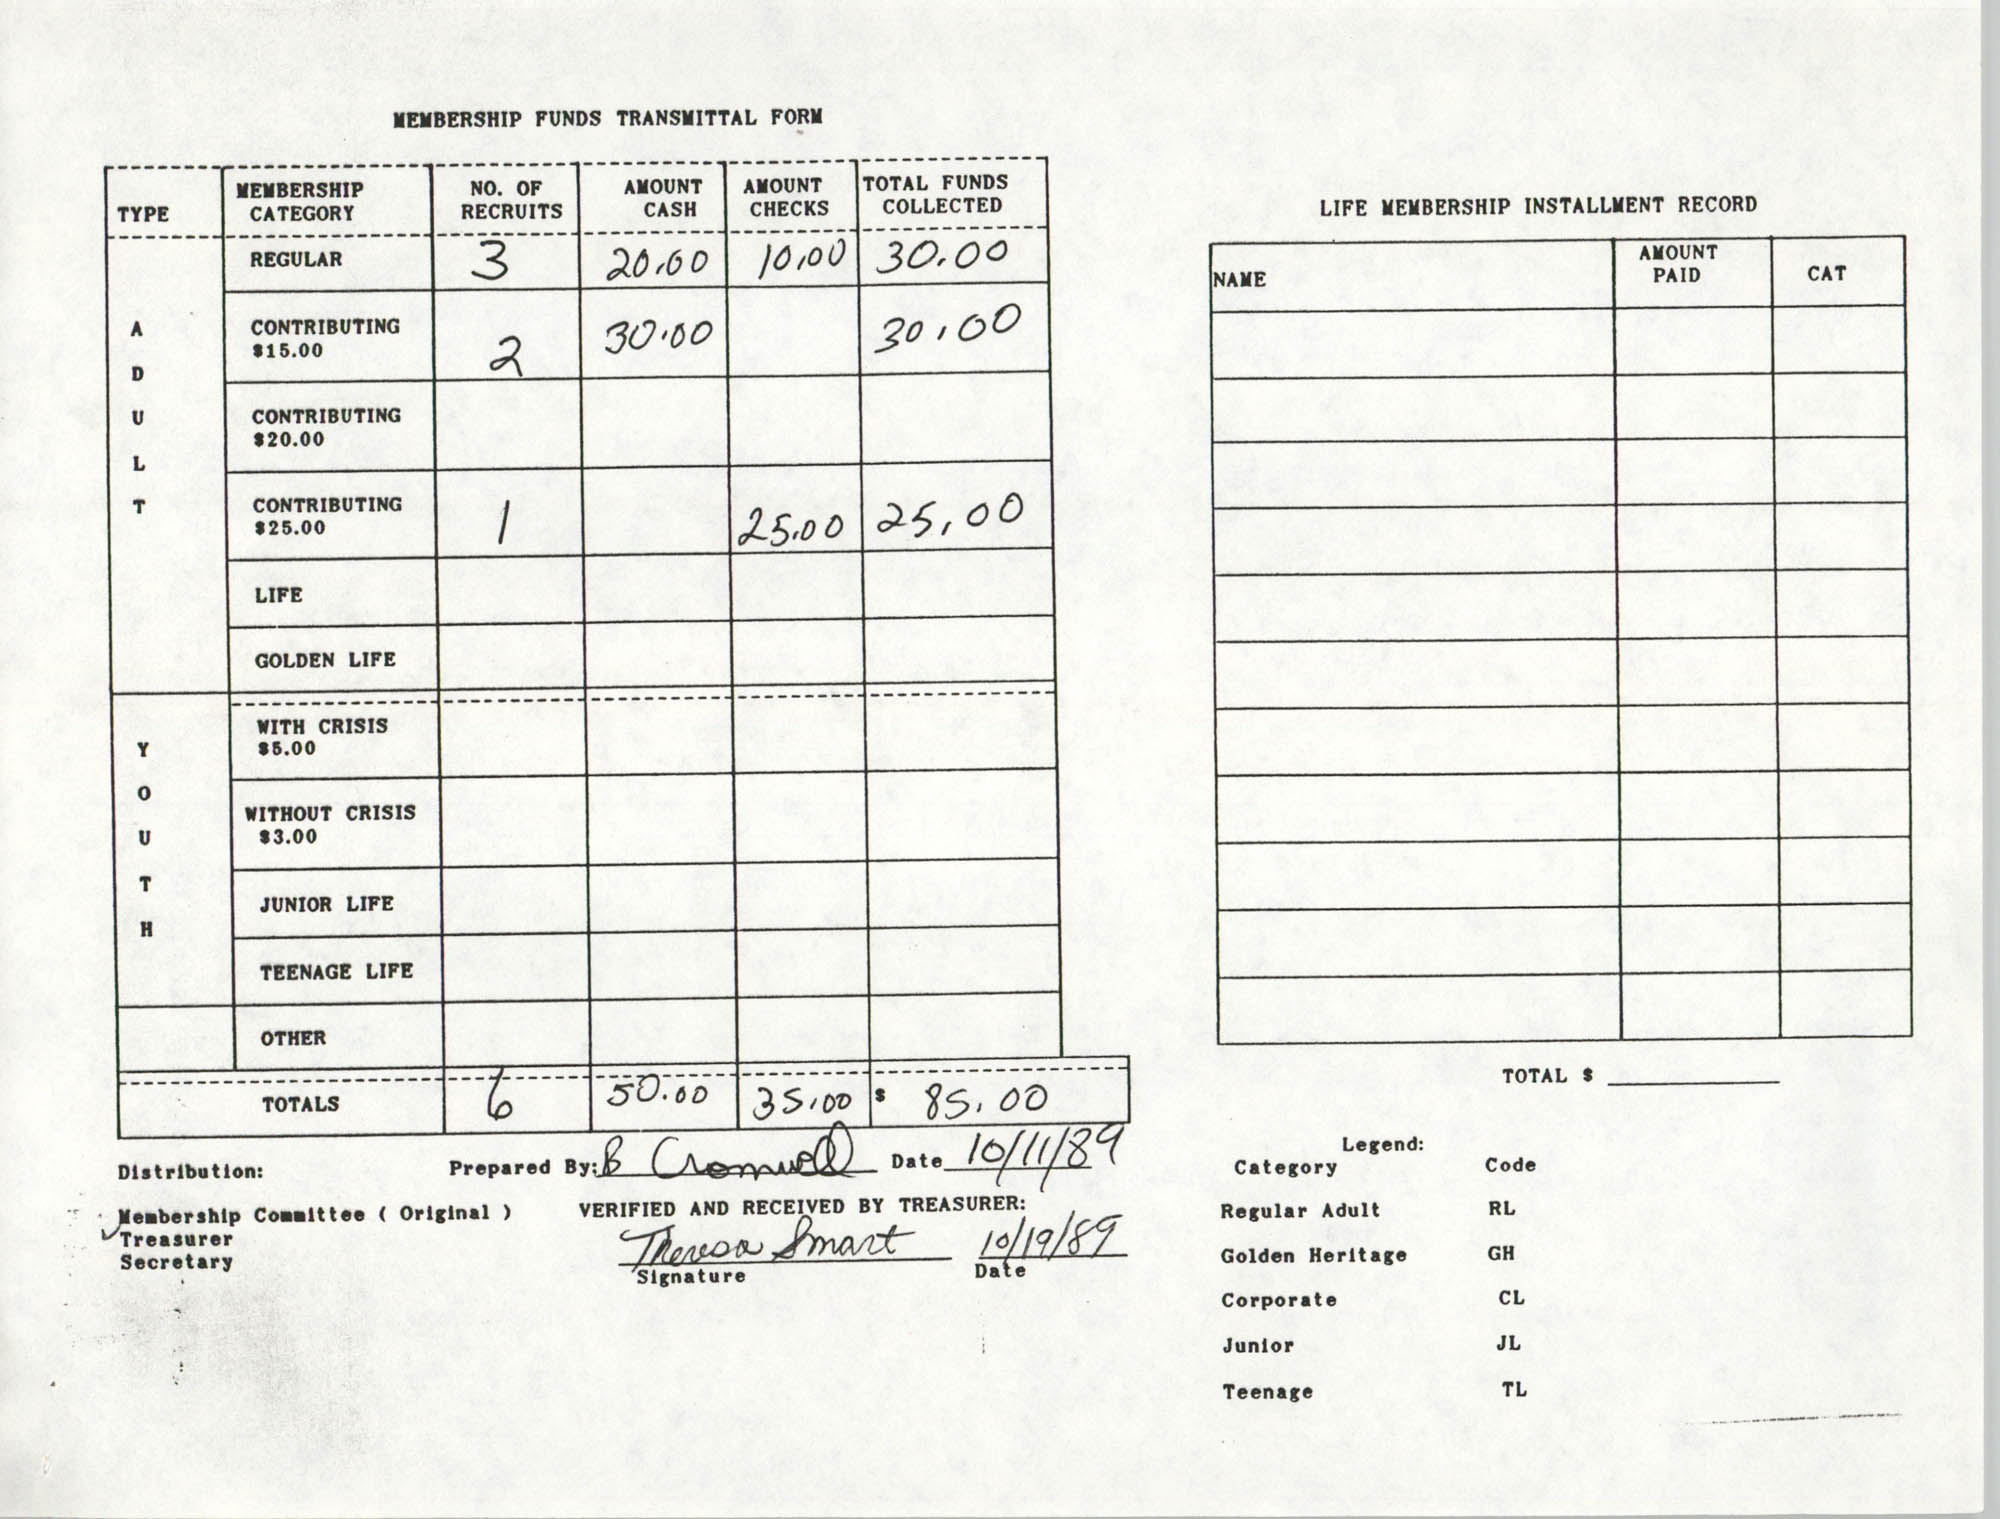 Charleston Branch of the NAACP Funds Transmittal Forms, October 1989, Page 3